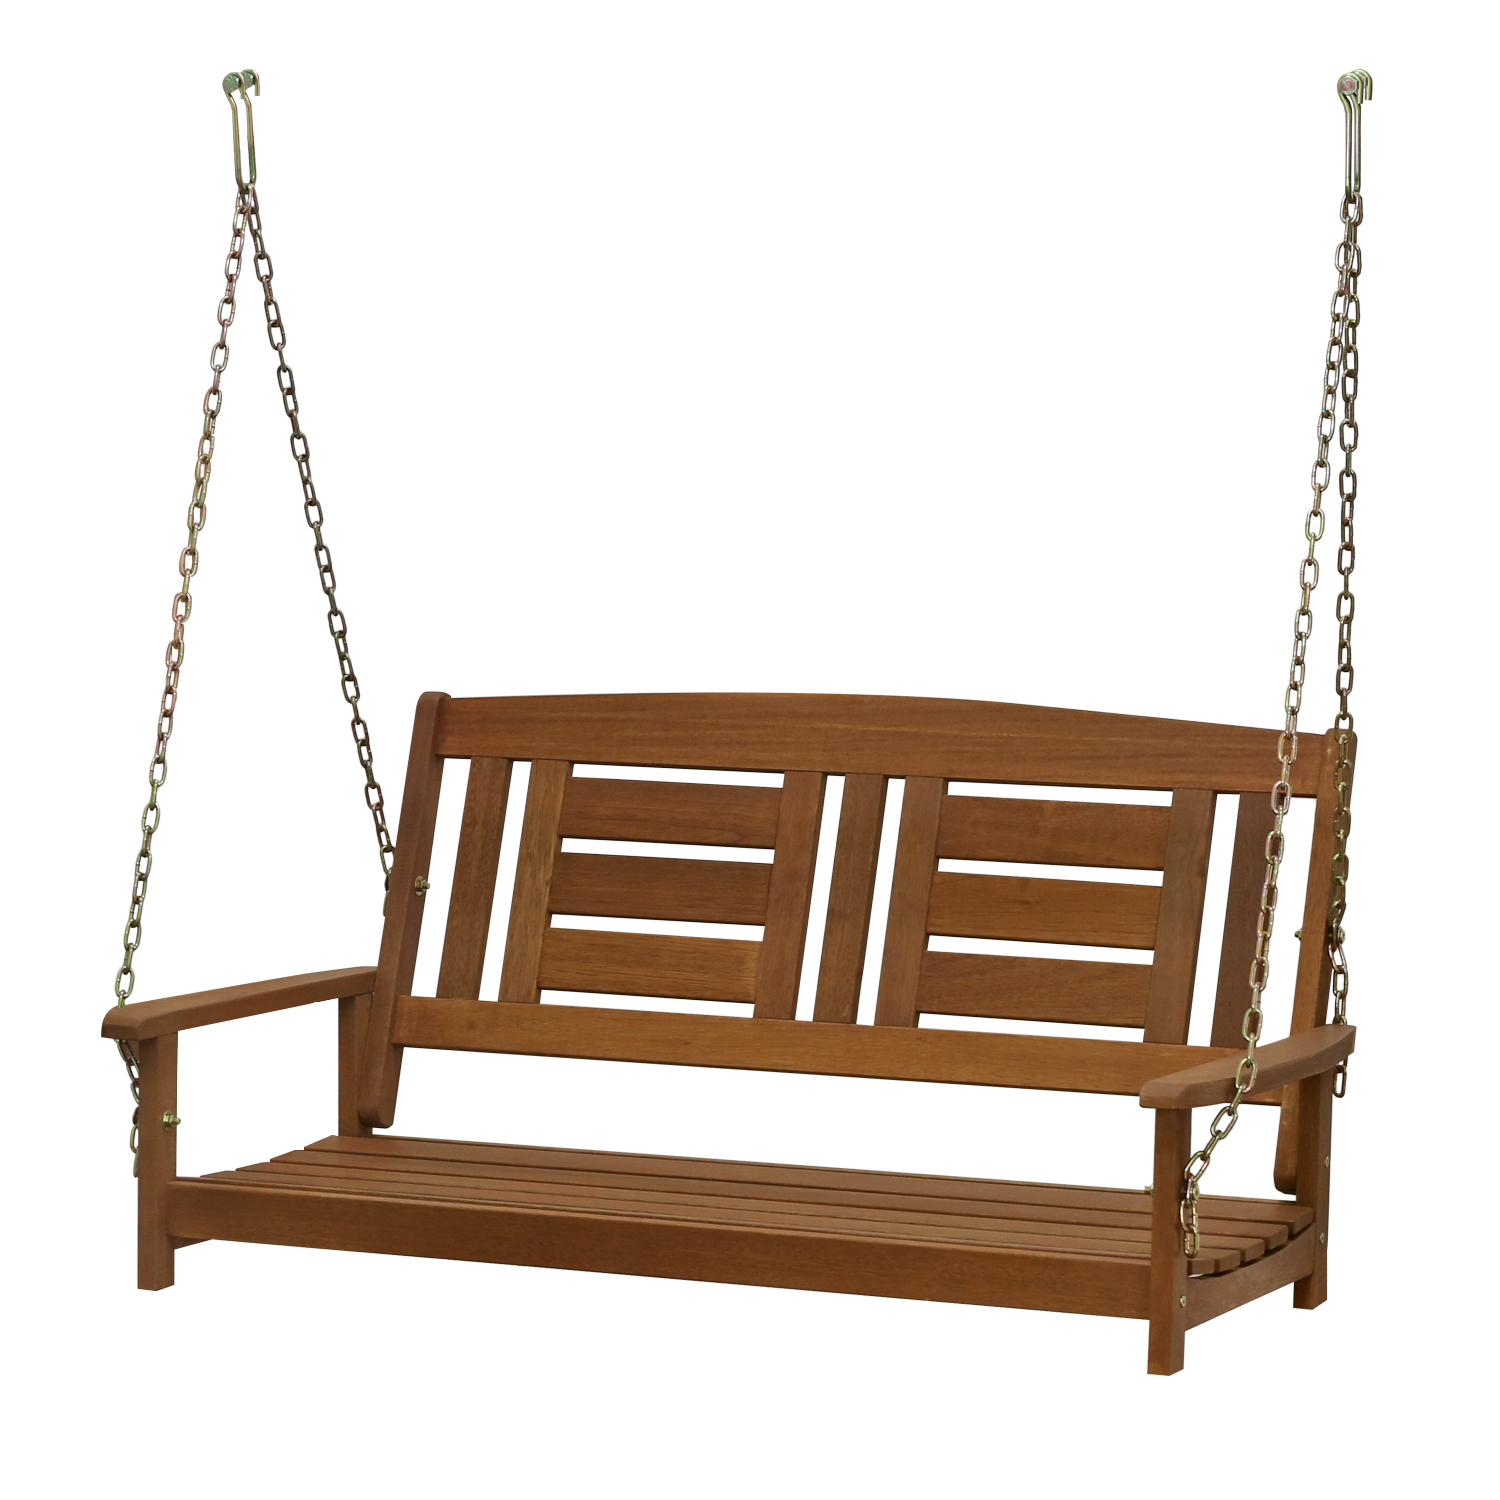 Furinno Tioman Hardwood Hanging Porch Swing with Chain, FG16409SC by Furinno